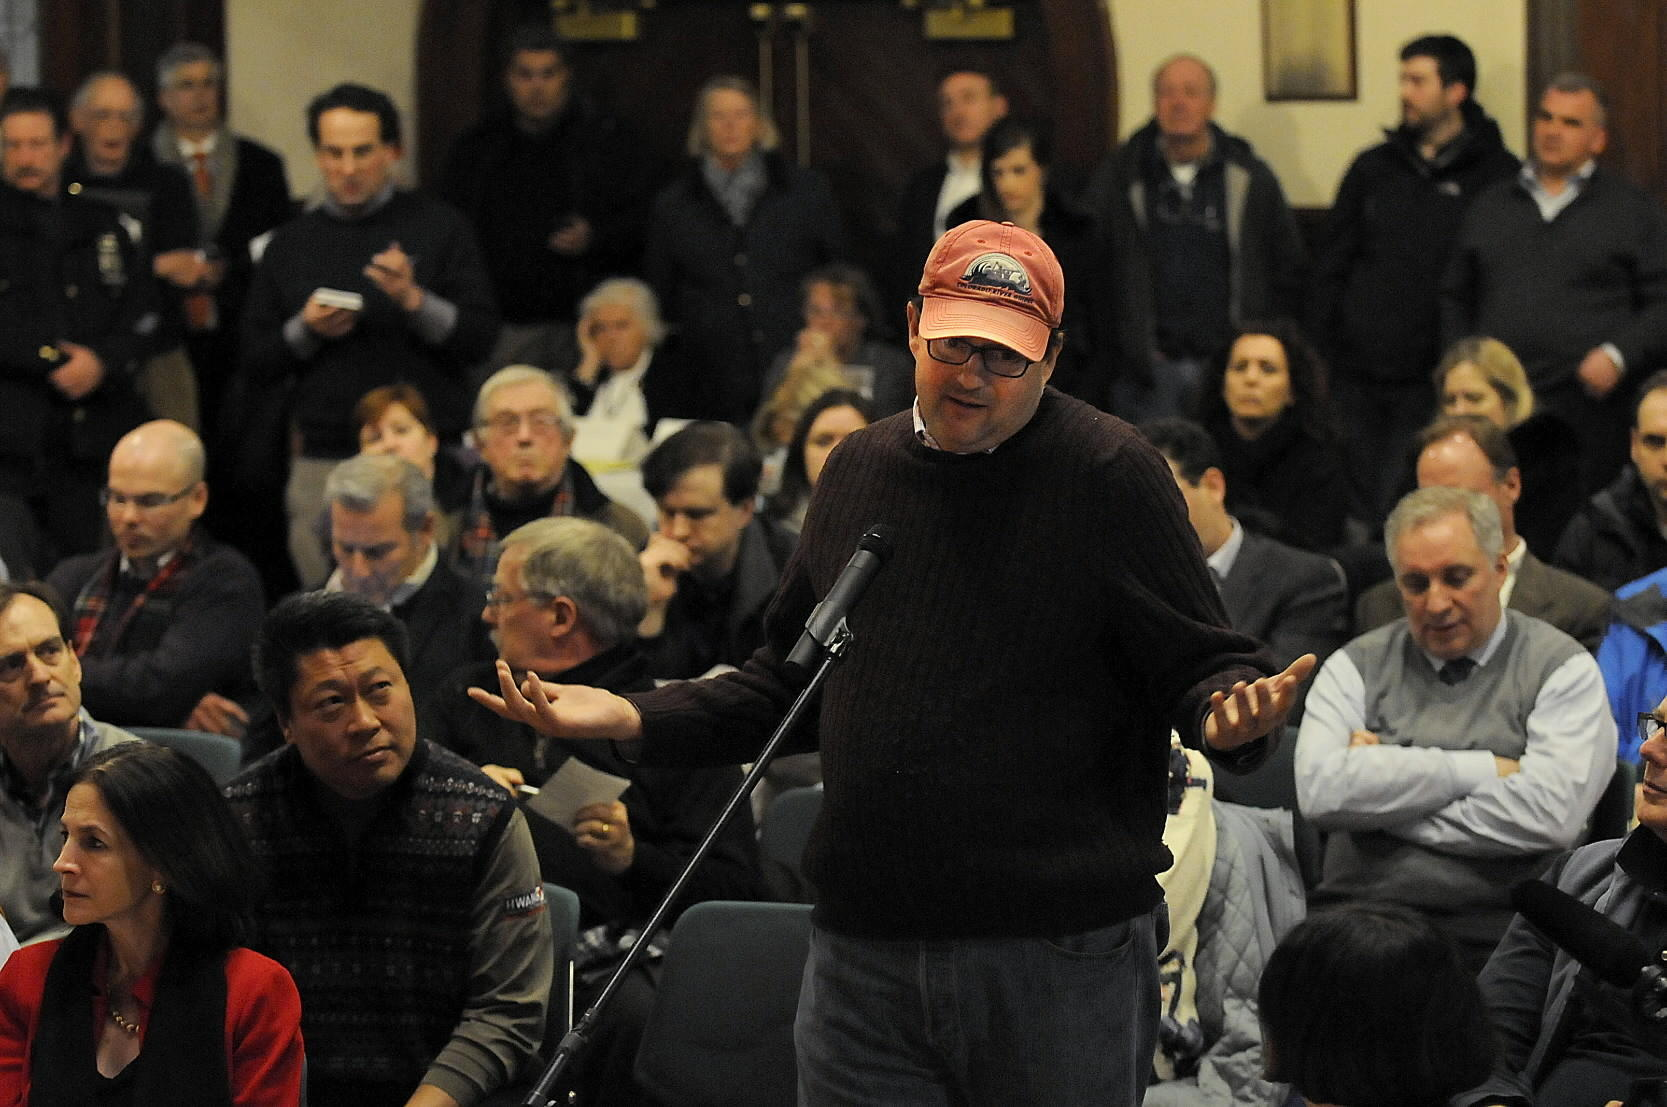 Kevin Downey of Fairfield expresses his displeasure with Metro-North during a forum opn Feb. 18 at the Peqout Library in Southport with state Transportation Commissioner James Redeker and John Kesich, senior vice president of operations for Metro-North. The library was packed to capacity.